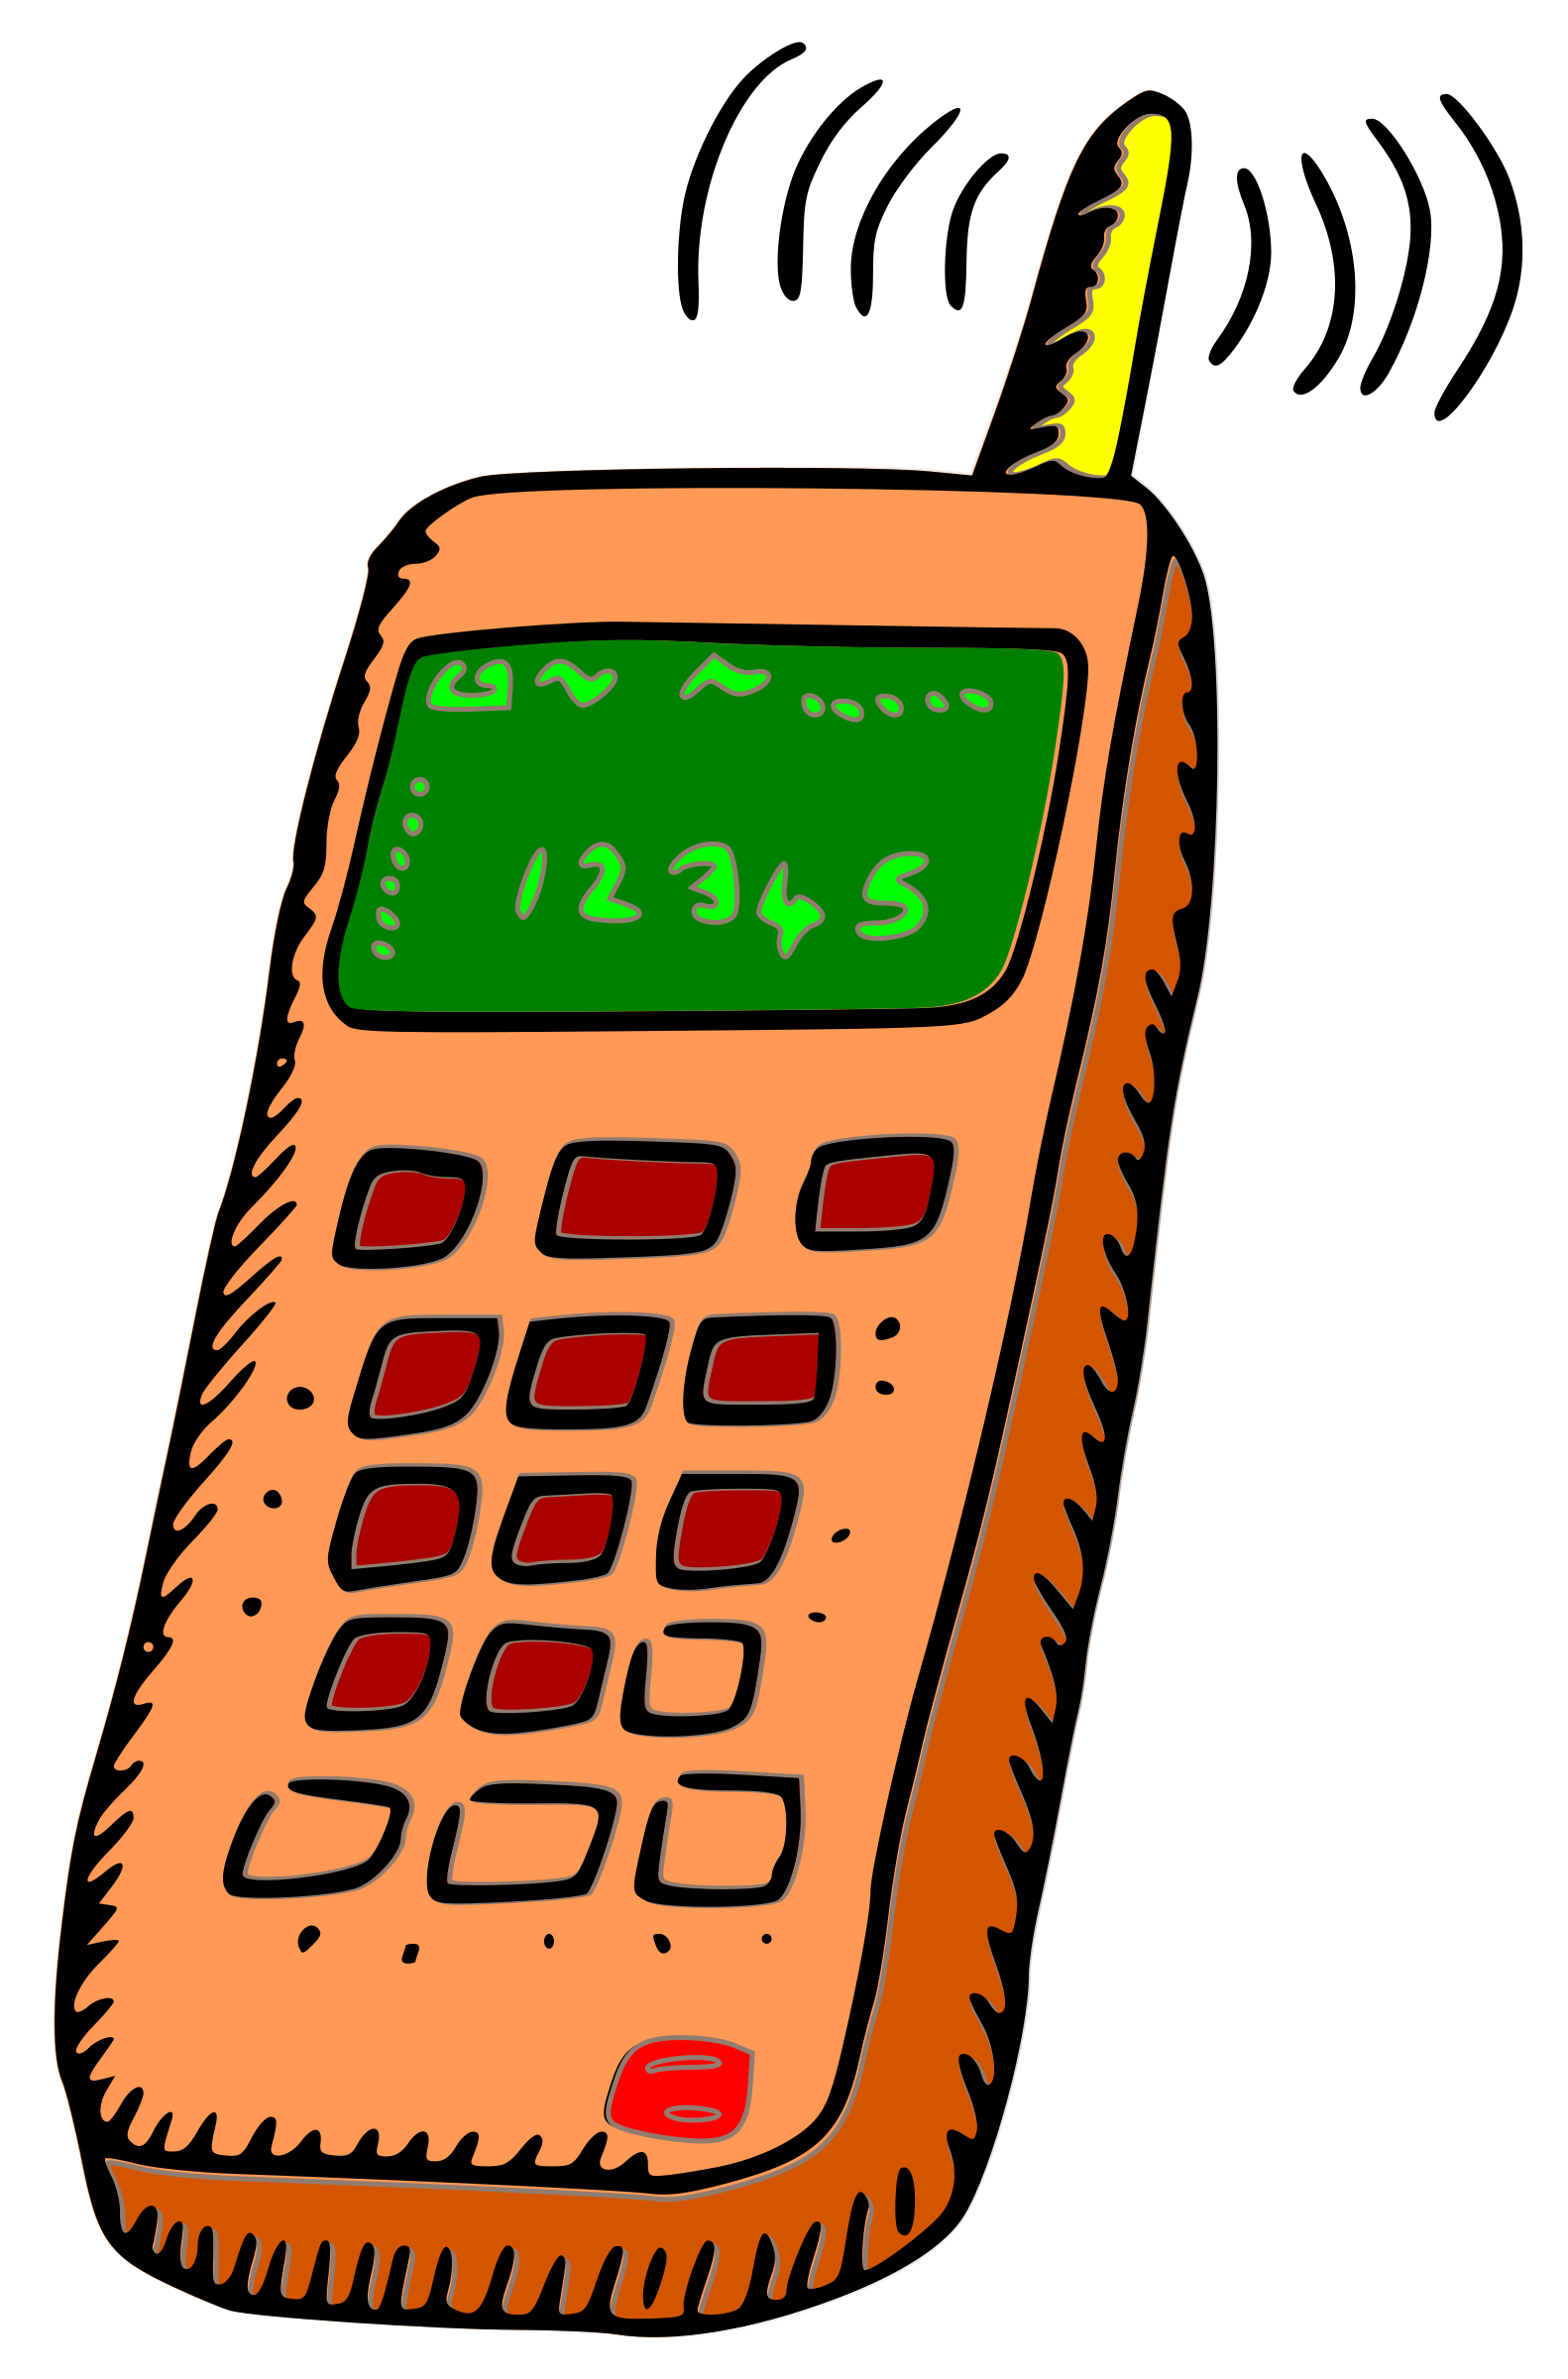 Phone clipart moblie. Analogue mobile big image